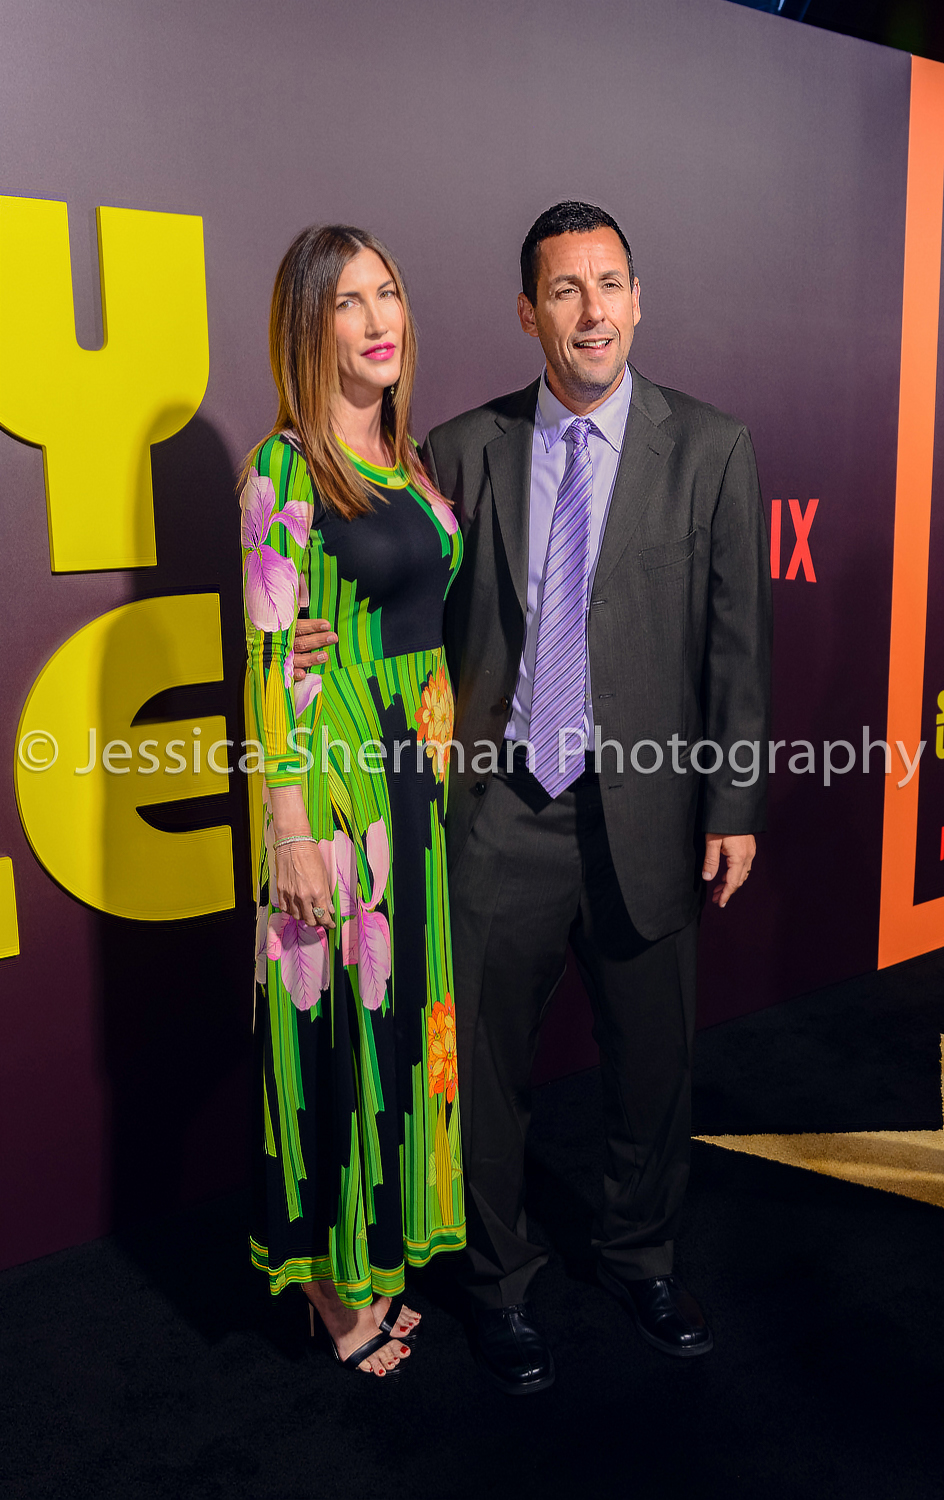 Adam_Sandler__Jessica_Sherman (1 of 1).jpg